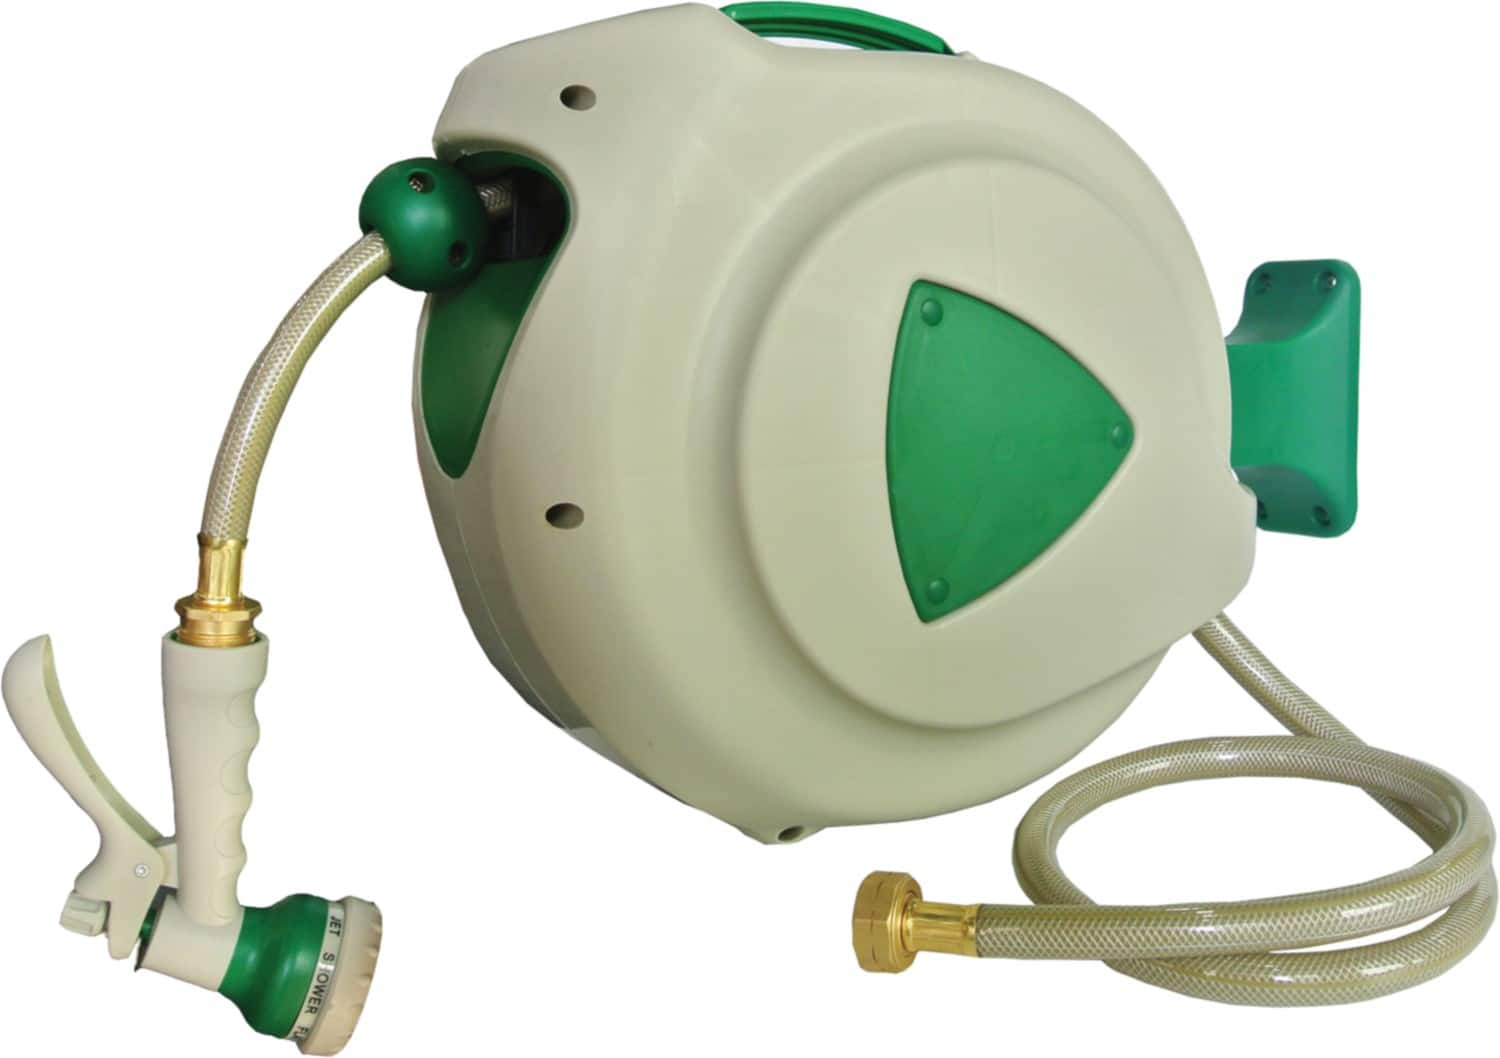 ONLY $20! 32-foot garden hose with sprayer AND AUTO-RETRACTING REEL (Napa Online store) YMMV